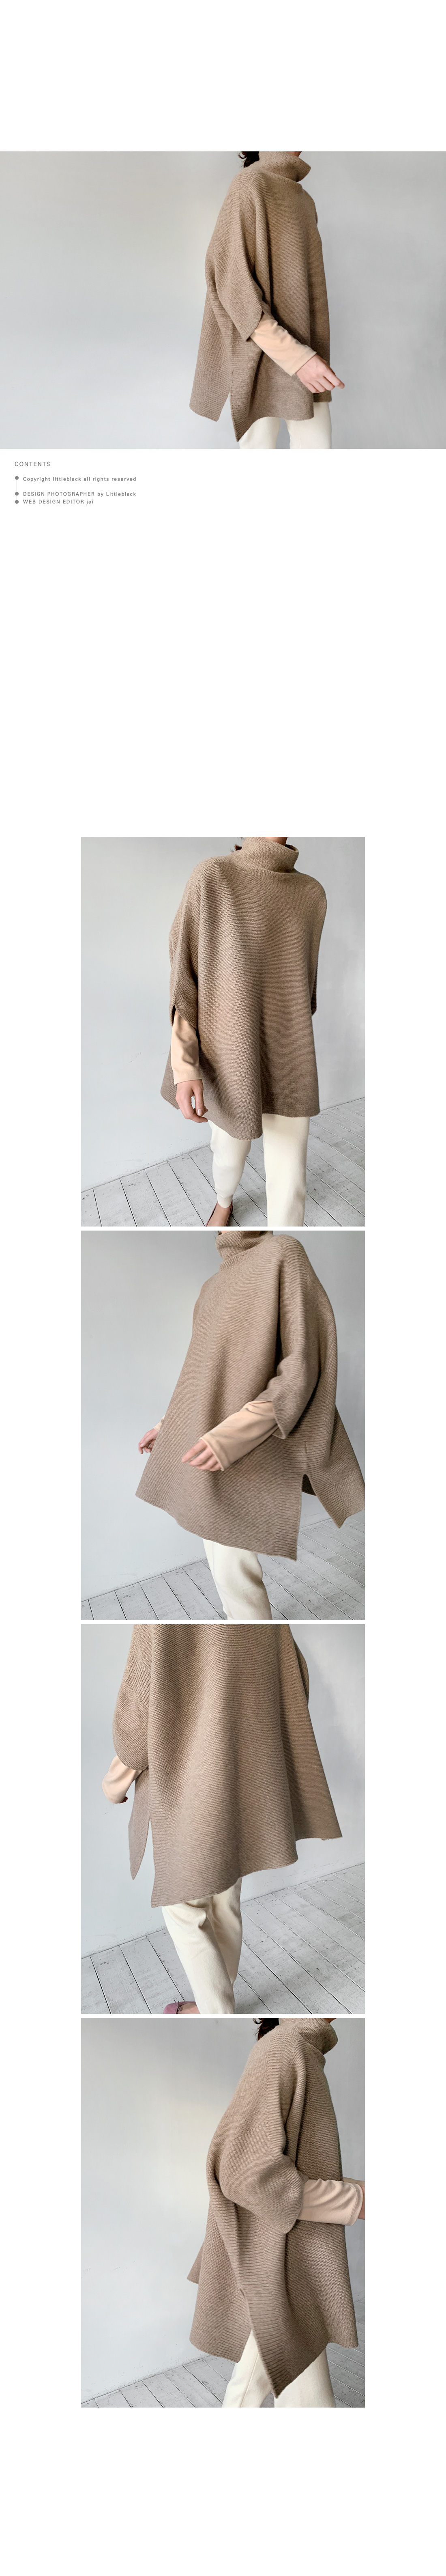 High Neck Whole Garment Knit Poncho|